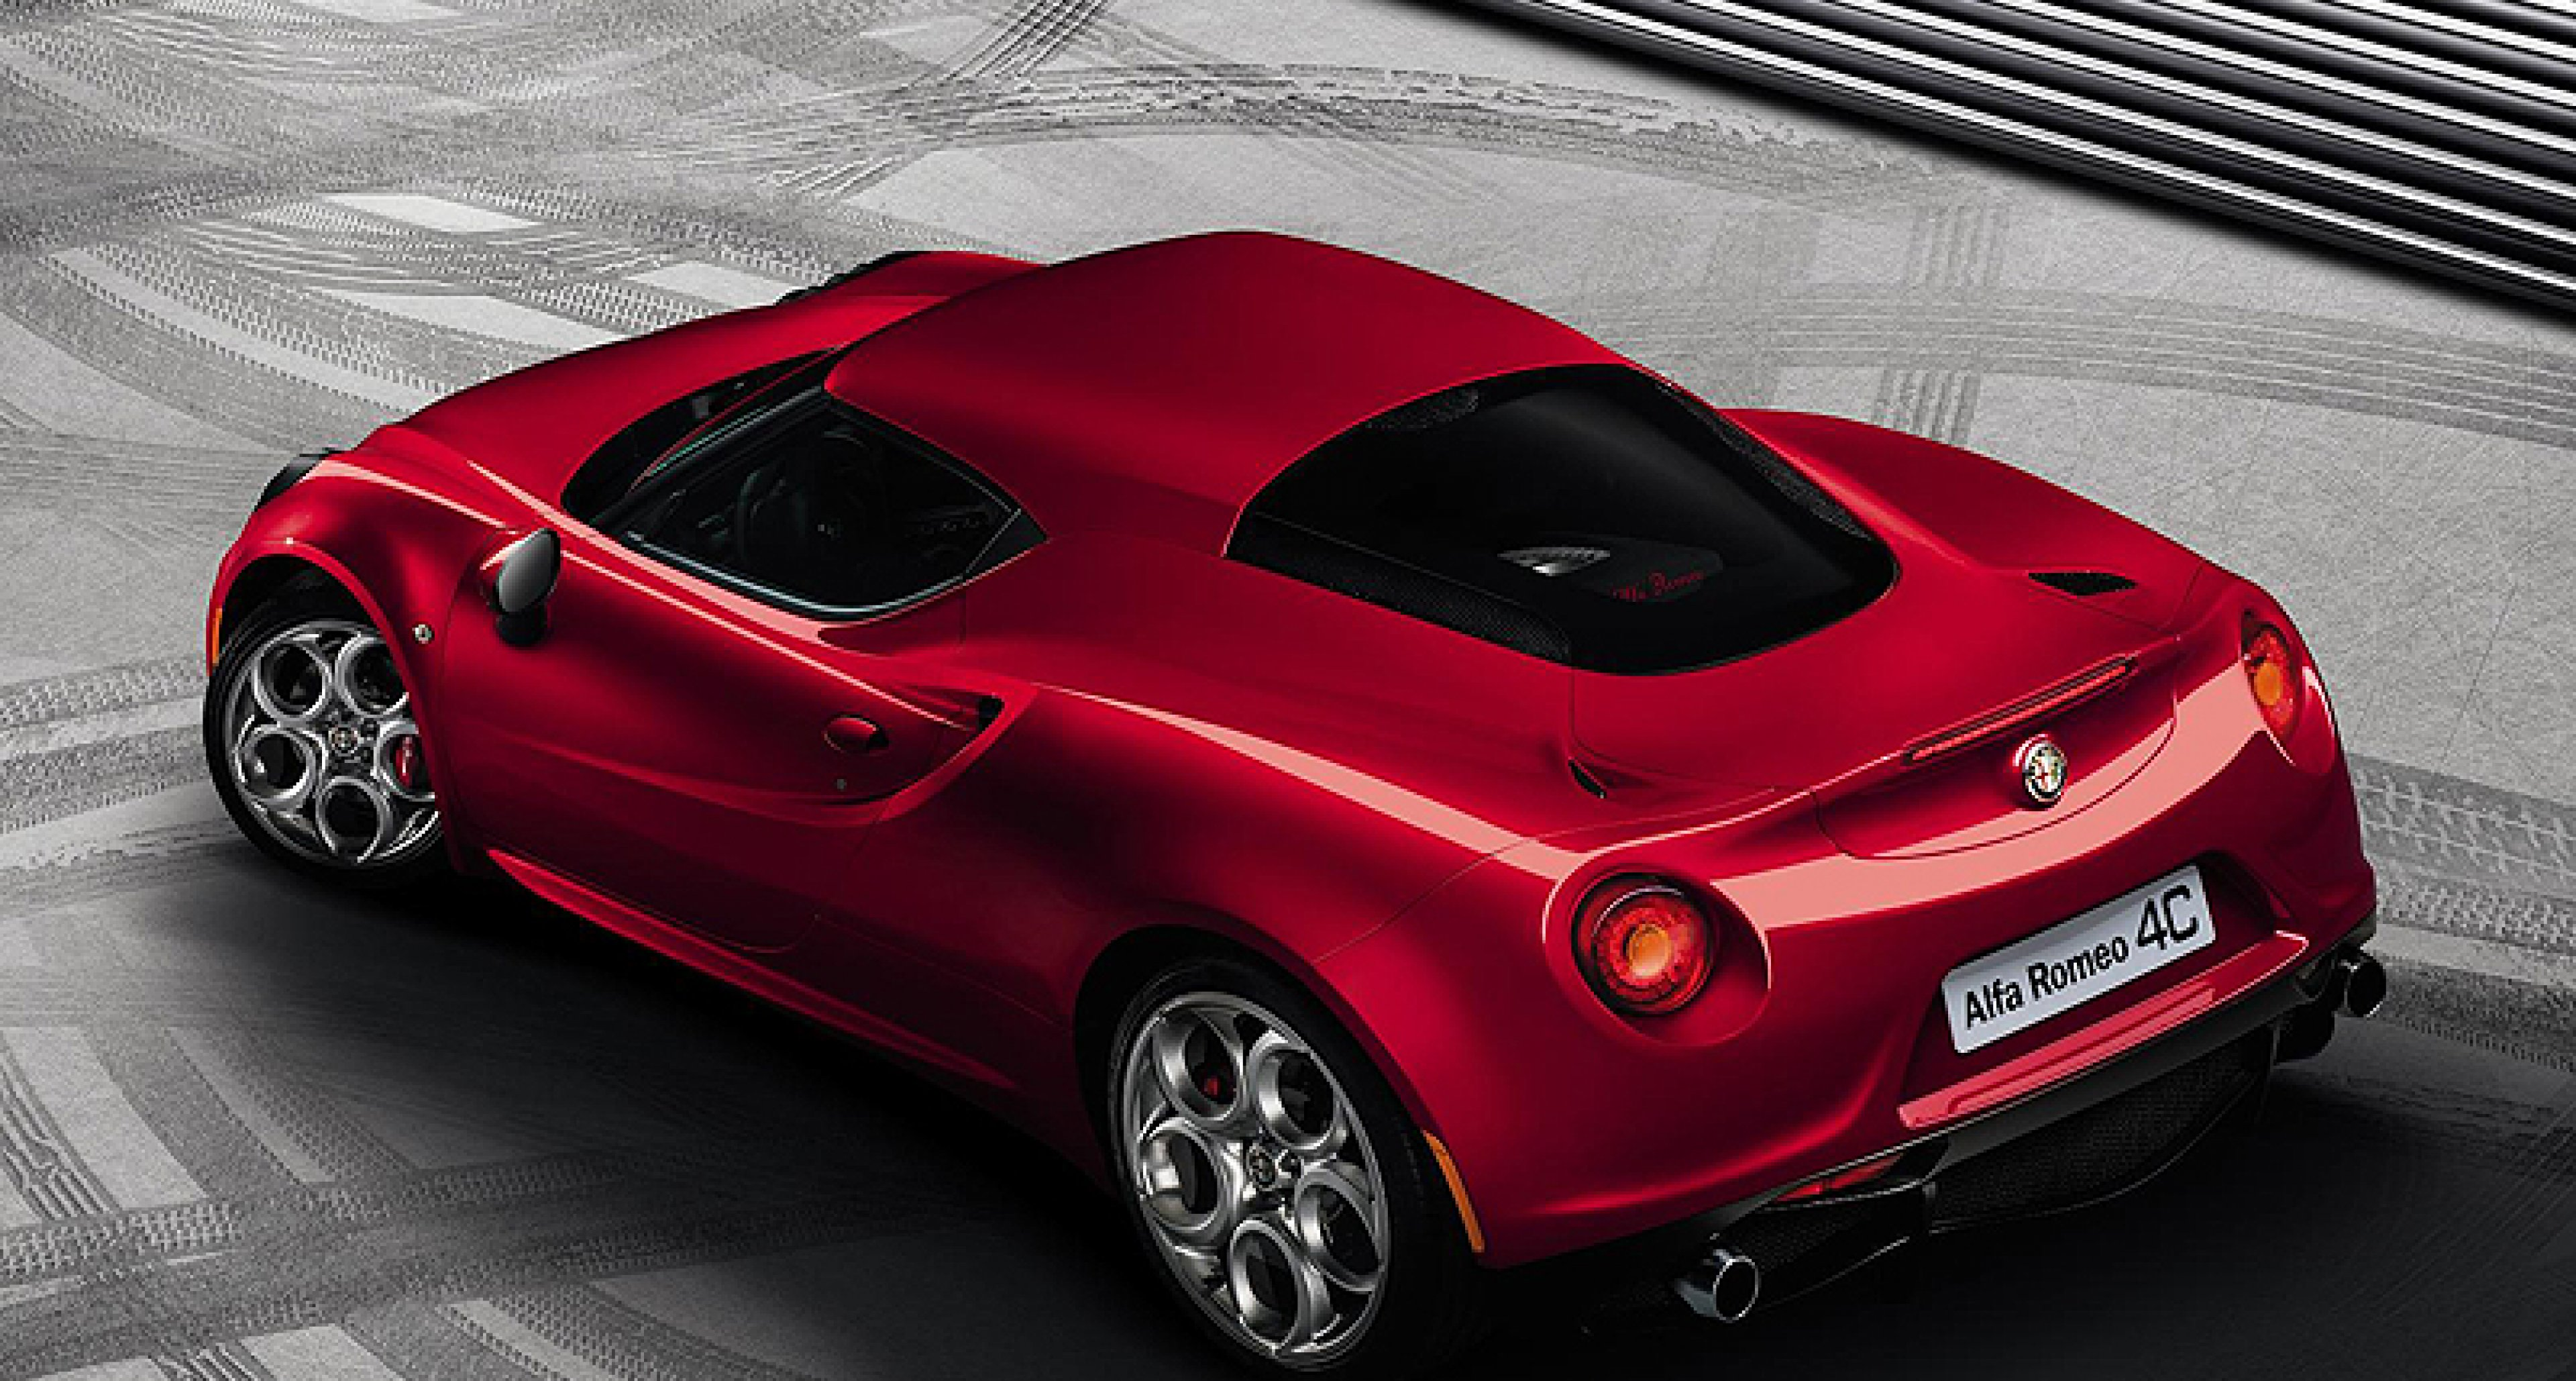 Compact Supercar: Alfa 4C is here at last